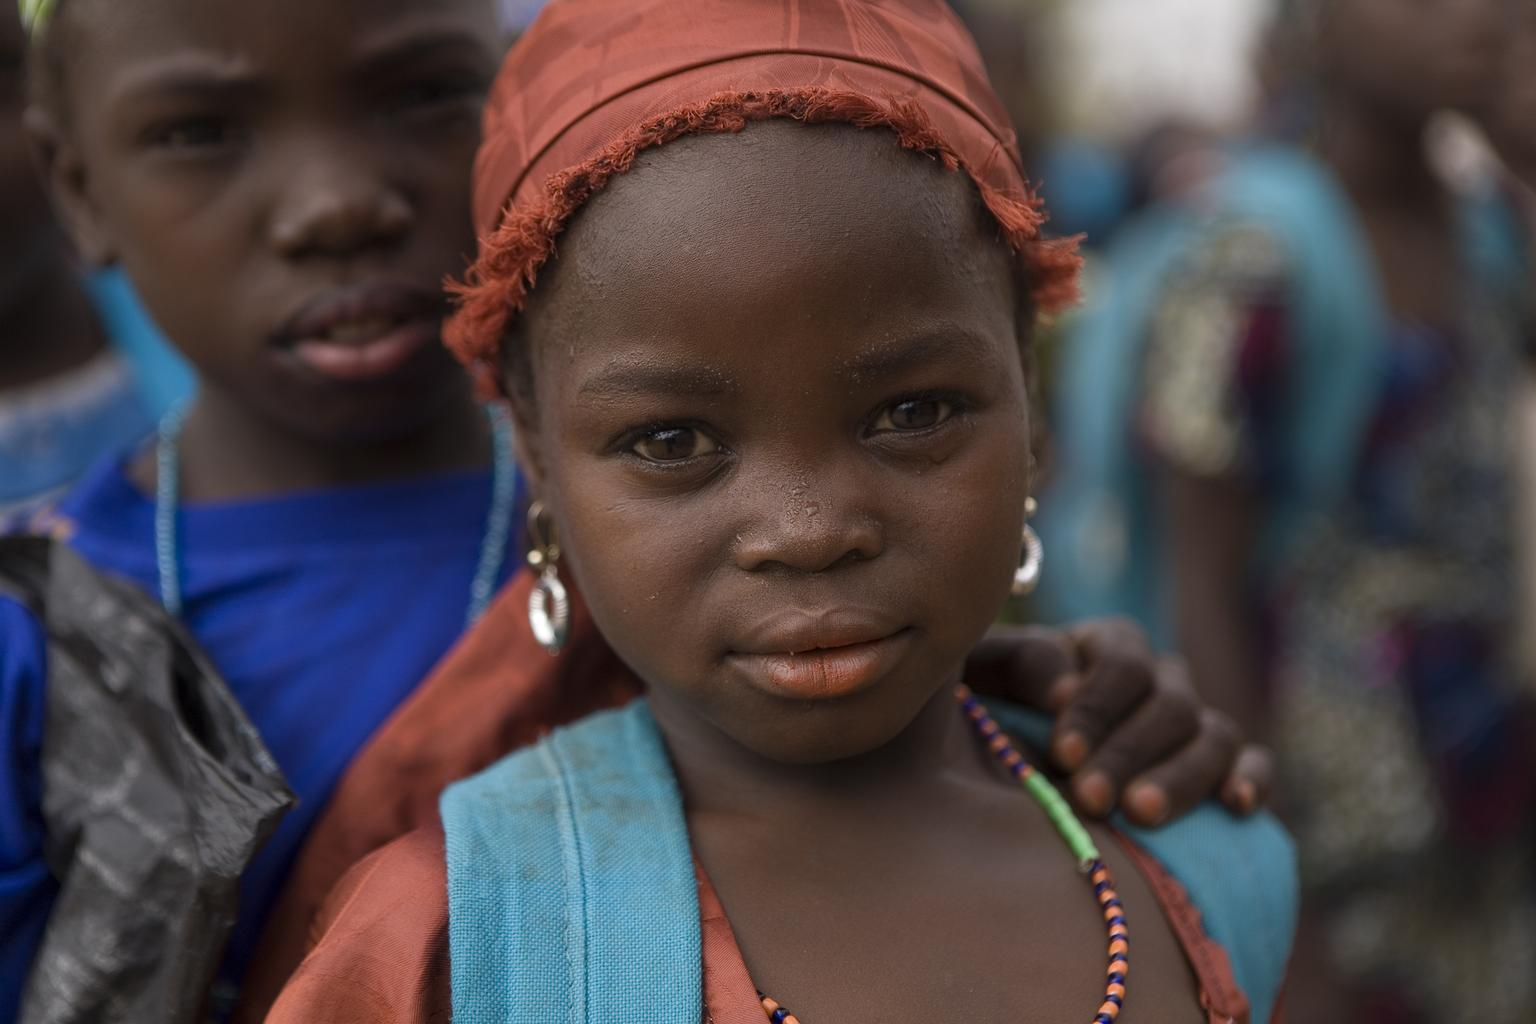 Goumbo (7) stands among other children outside her school in the village of Dan Gora, Niger.